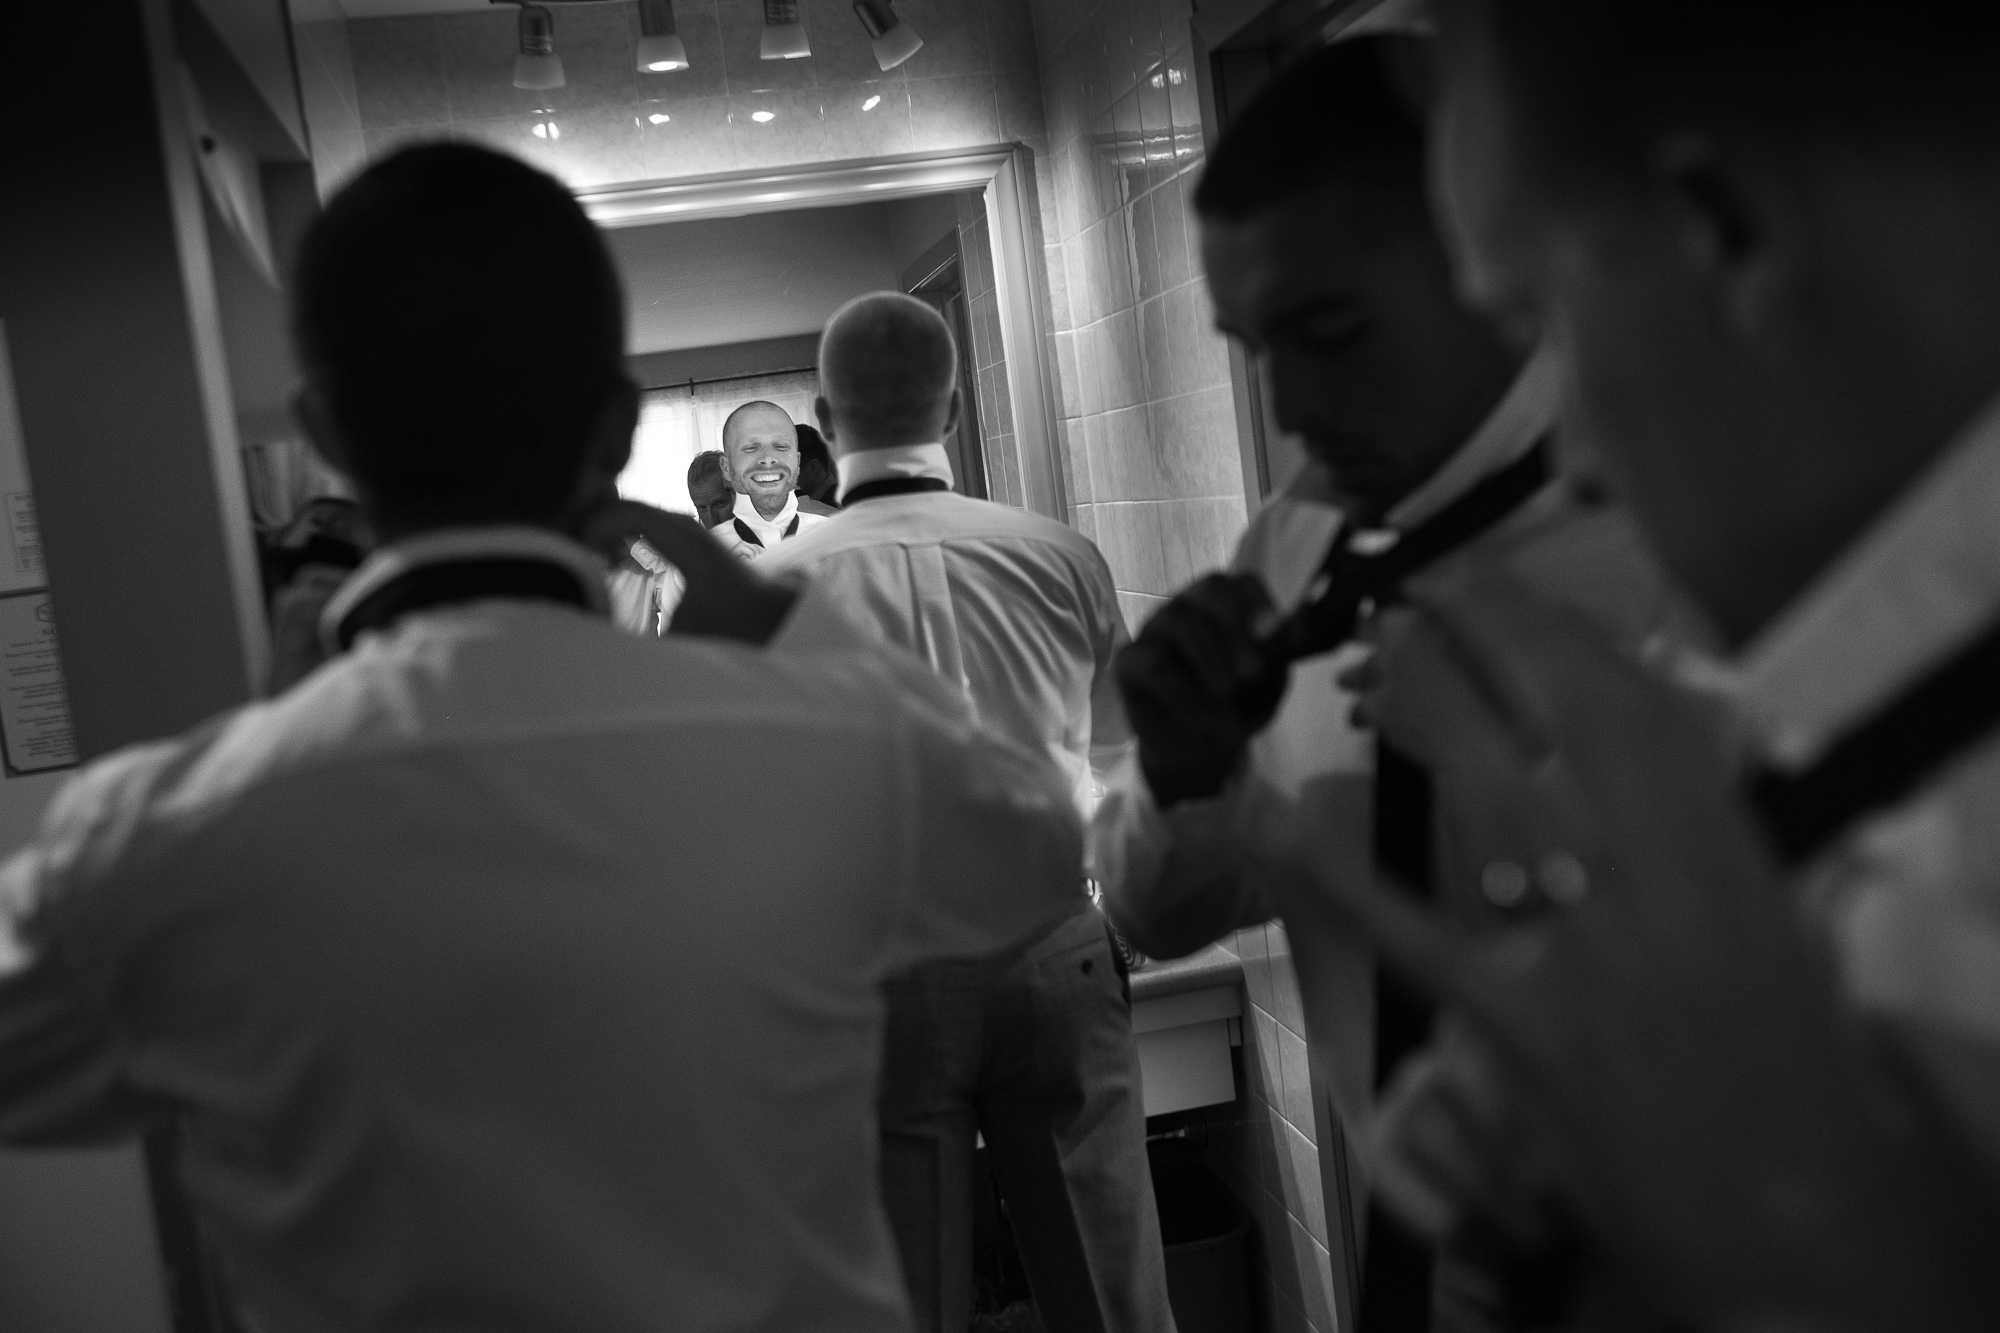 Jeff and his groomsmen get ready in their hotel room at the Hessenland Inn.